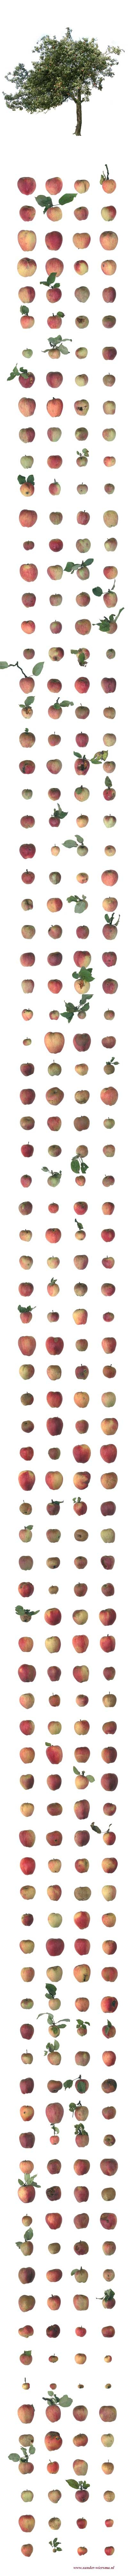 All the apples of one tree | made by Xander Wiersma via www.xander-wiersma.nl